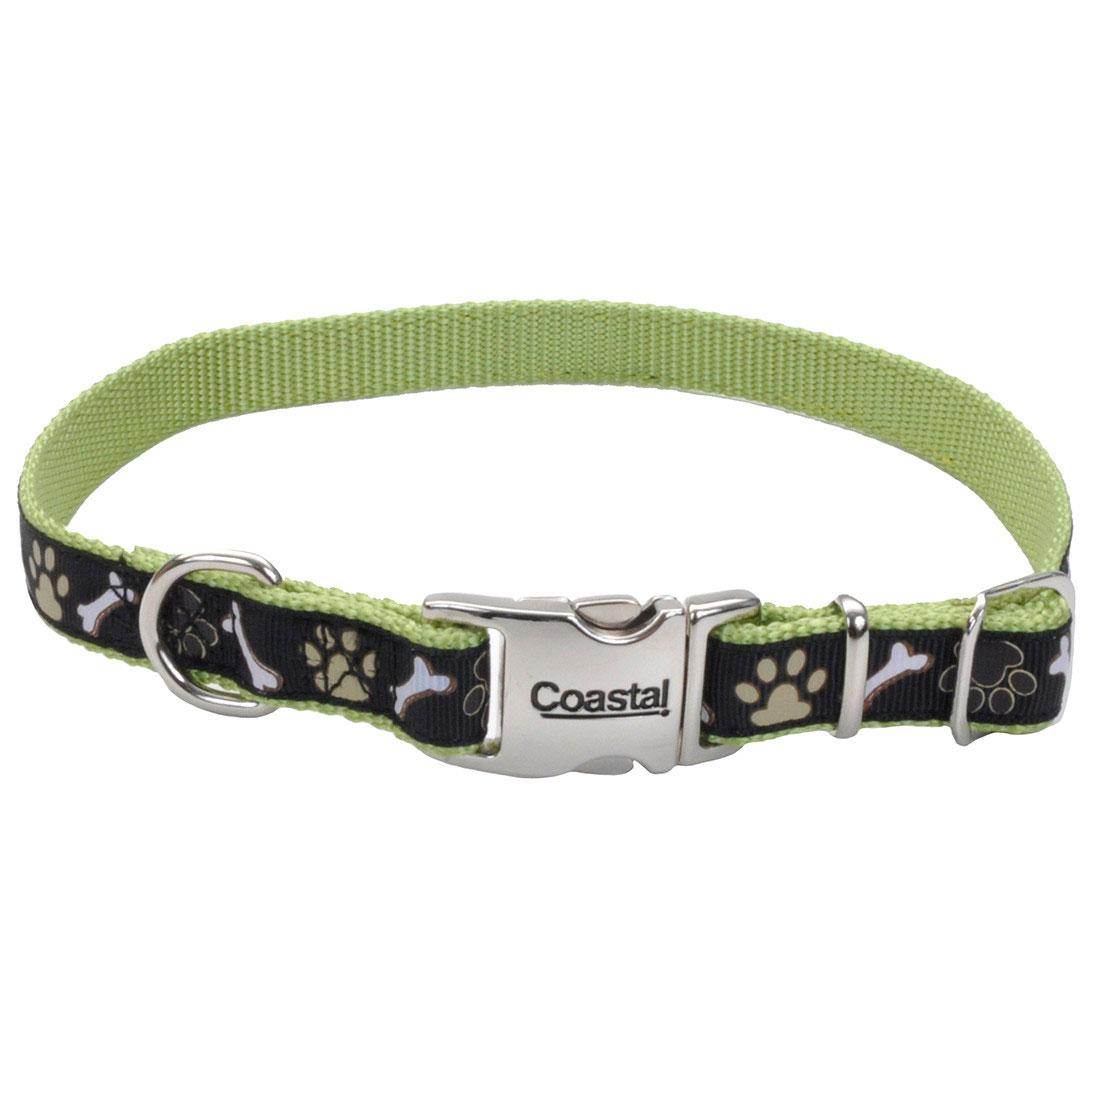 Ribbon Adjustable Collar with Metal Buckle for Dogs, Brown Paws & Bones, 5/8-in x 8-12-in